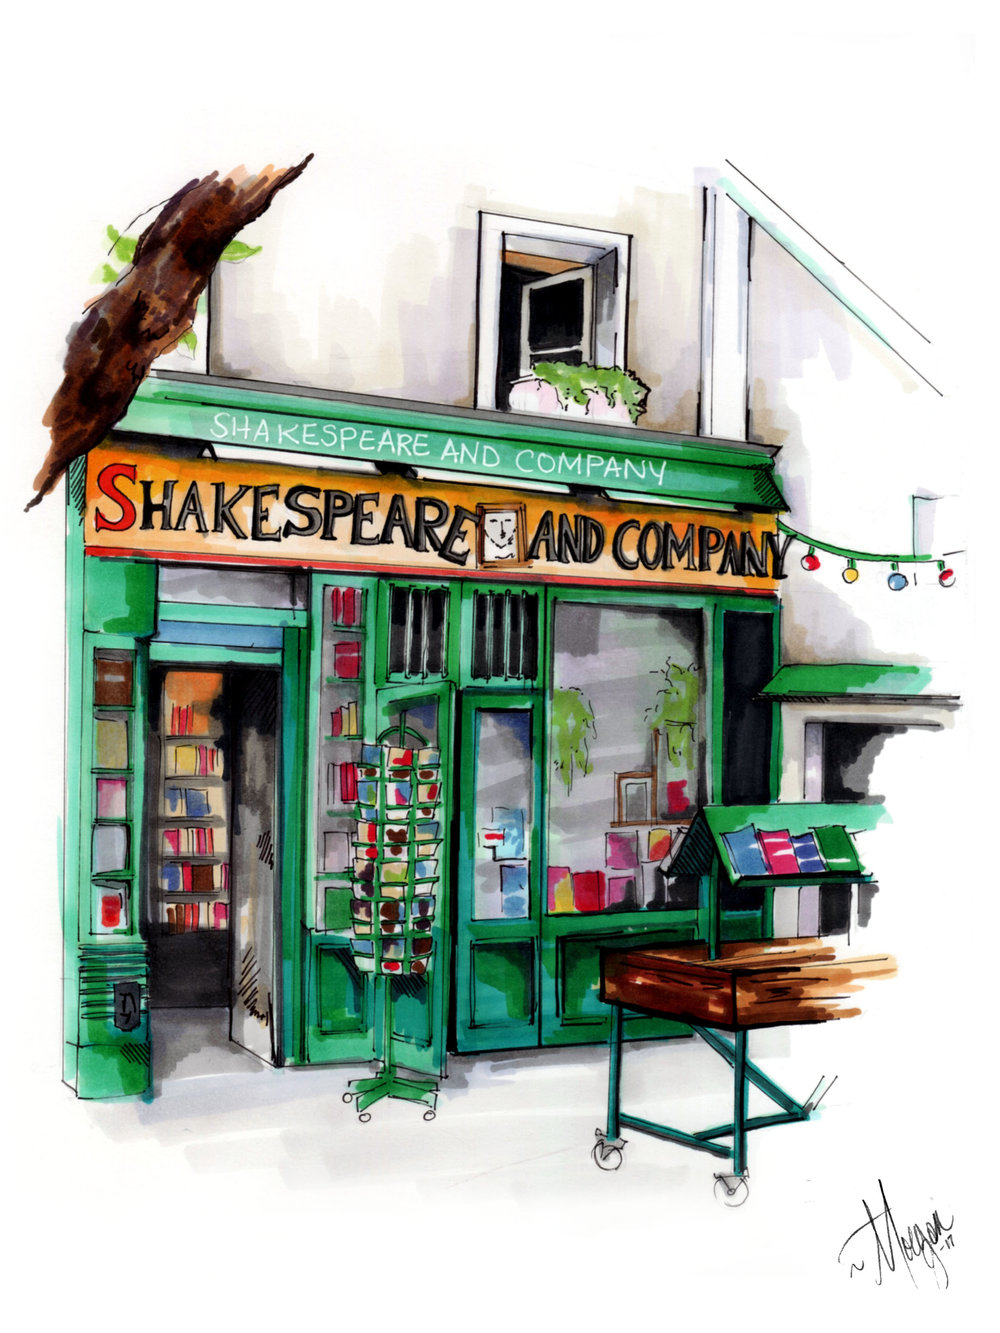 Shakespeare-and-co-illustration-morgan-swank-studio.jpg